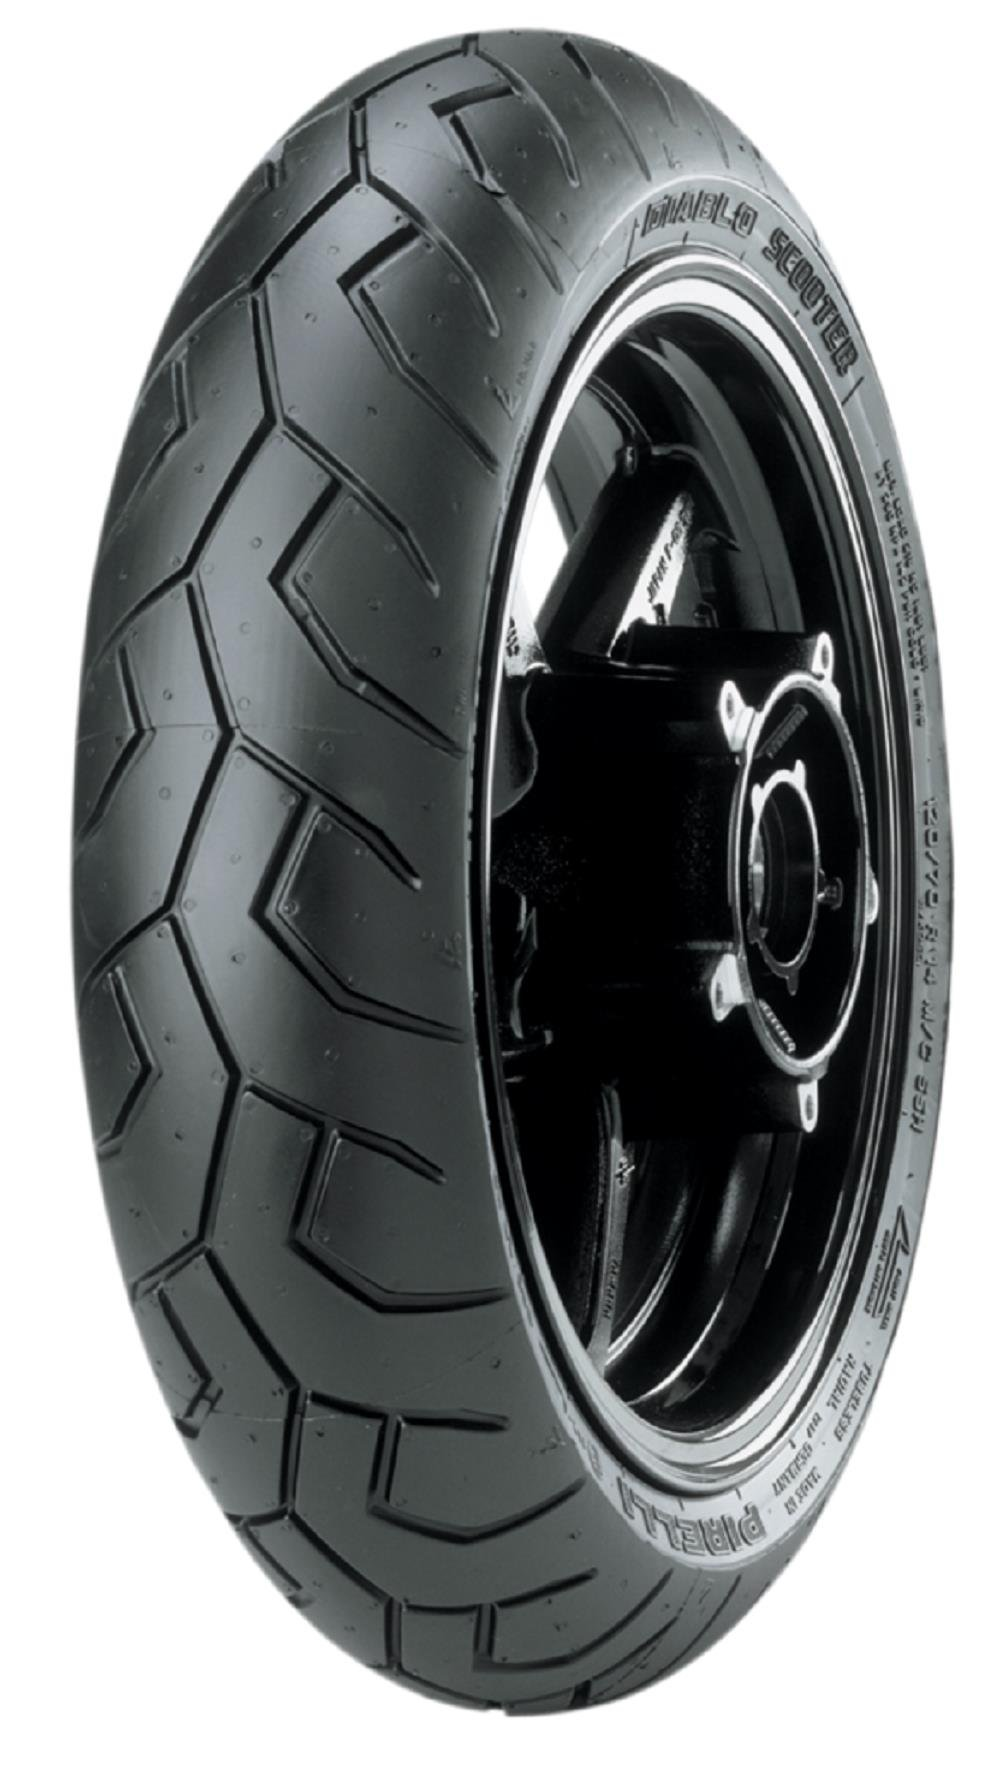 Pirelli Diablo Scooter Front/Rear Tire - 140/70-13 (13) 2429600 by Pirelli (Image #1)